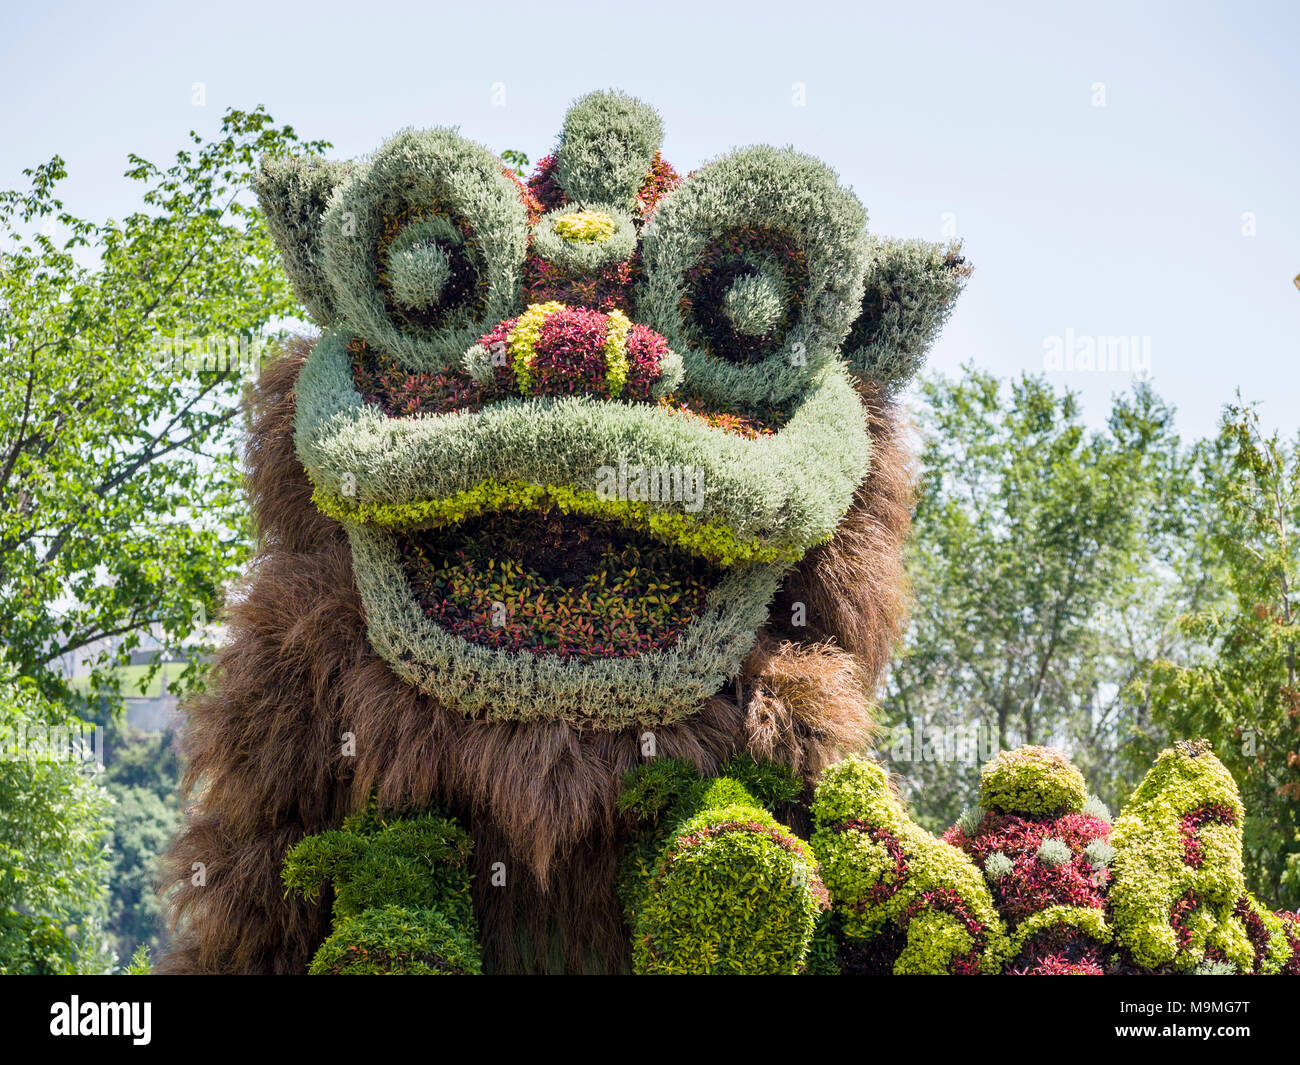 Chinese dragon plant sculpture: A huge plant-based sculpture of a chinese mythical dragon formed from a multitude of colourful plants at MosaiCanada 150. - Stock Image